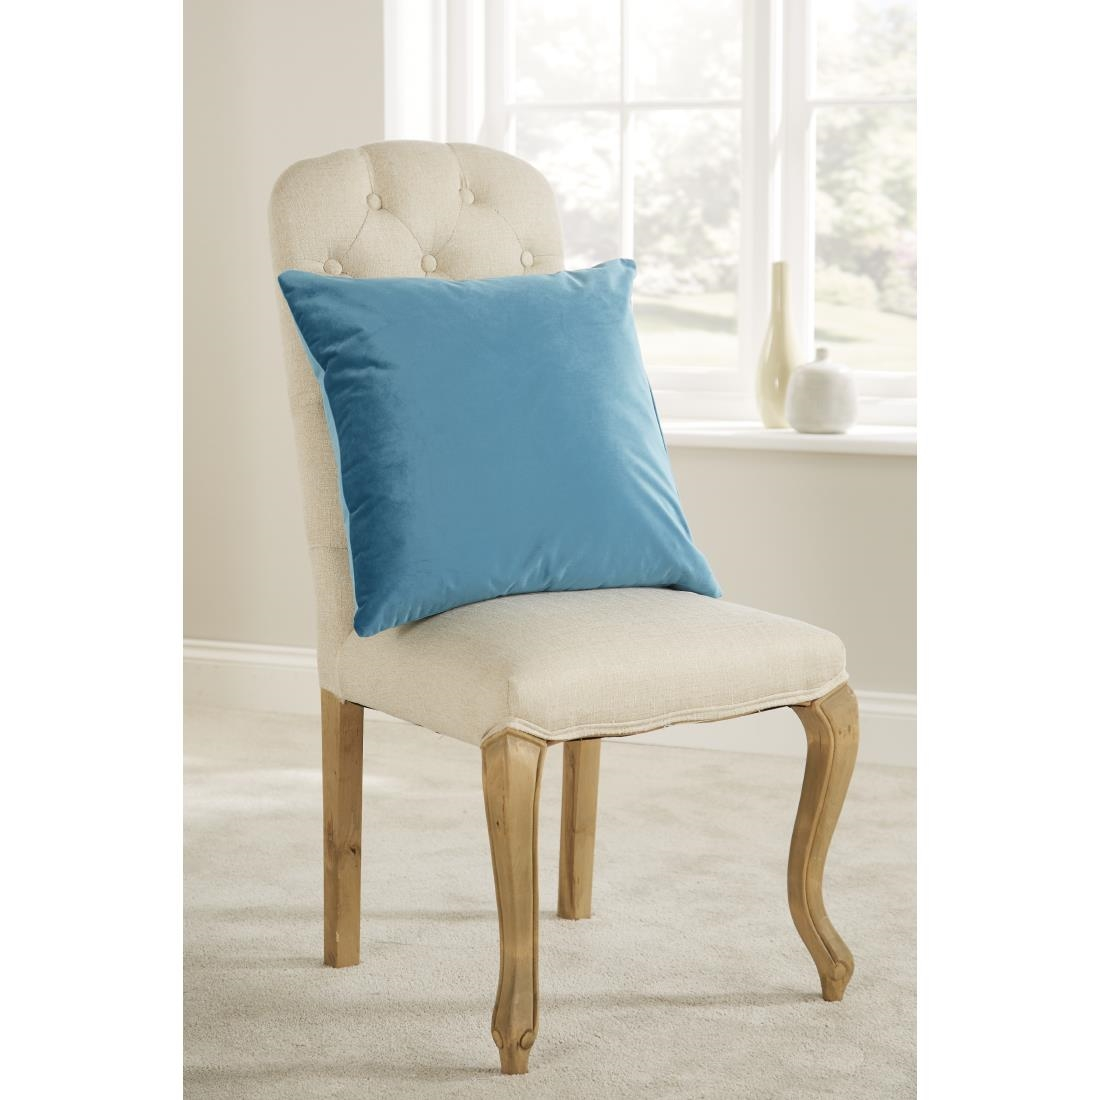 Image of Mitre Comfort DArcy Unpiped Cushion Teal